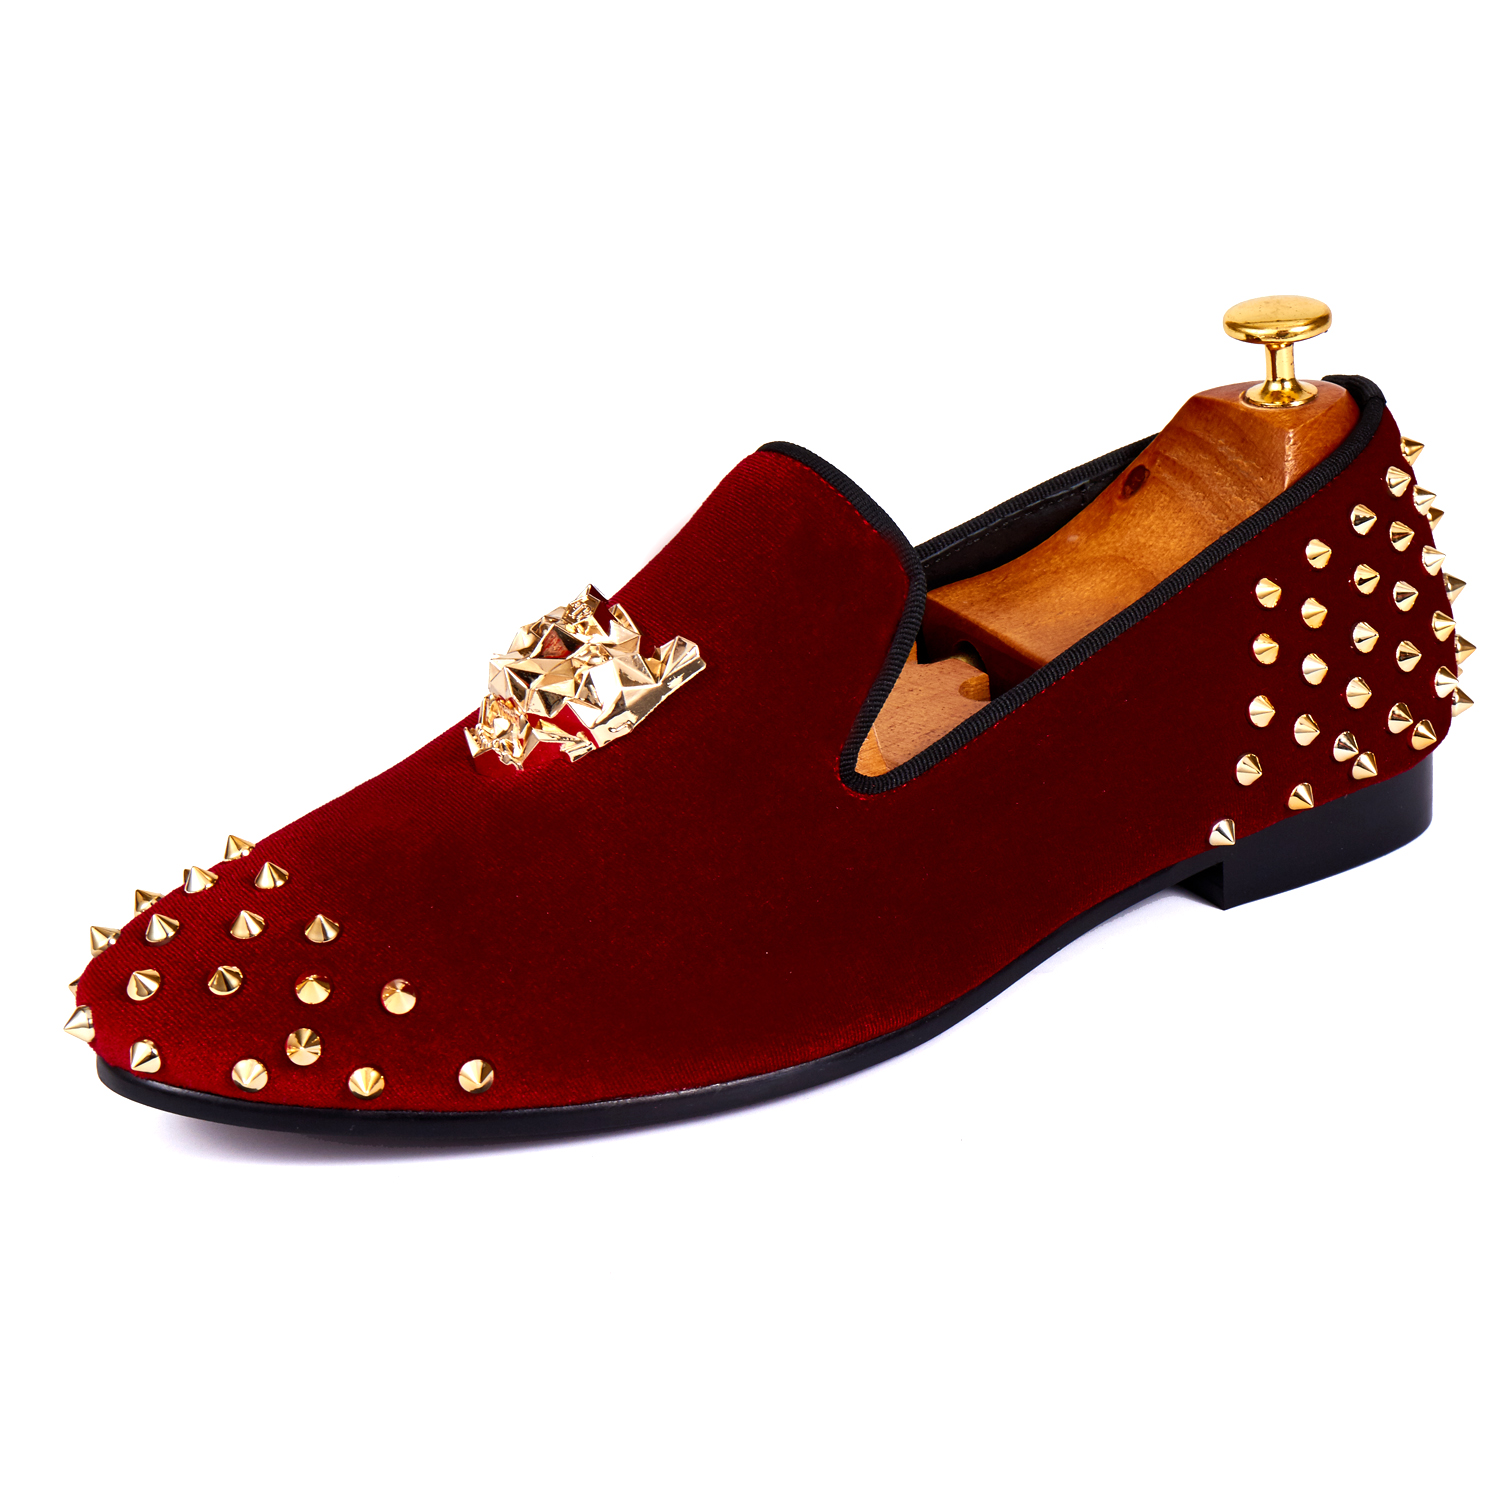 Harpelunde Mens Dress Shoes Rivets Red Velvet Loafer Animal Buckle Flat Size 7-14